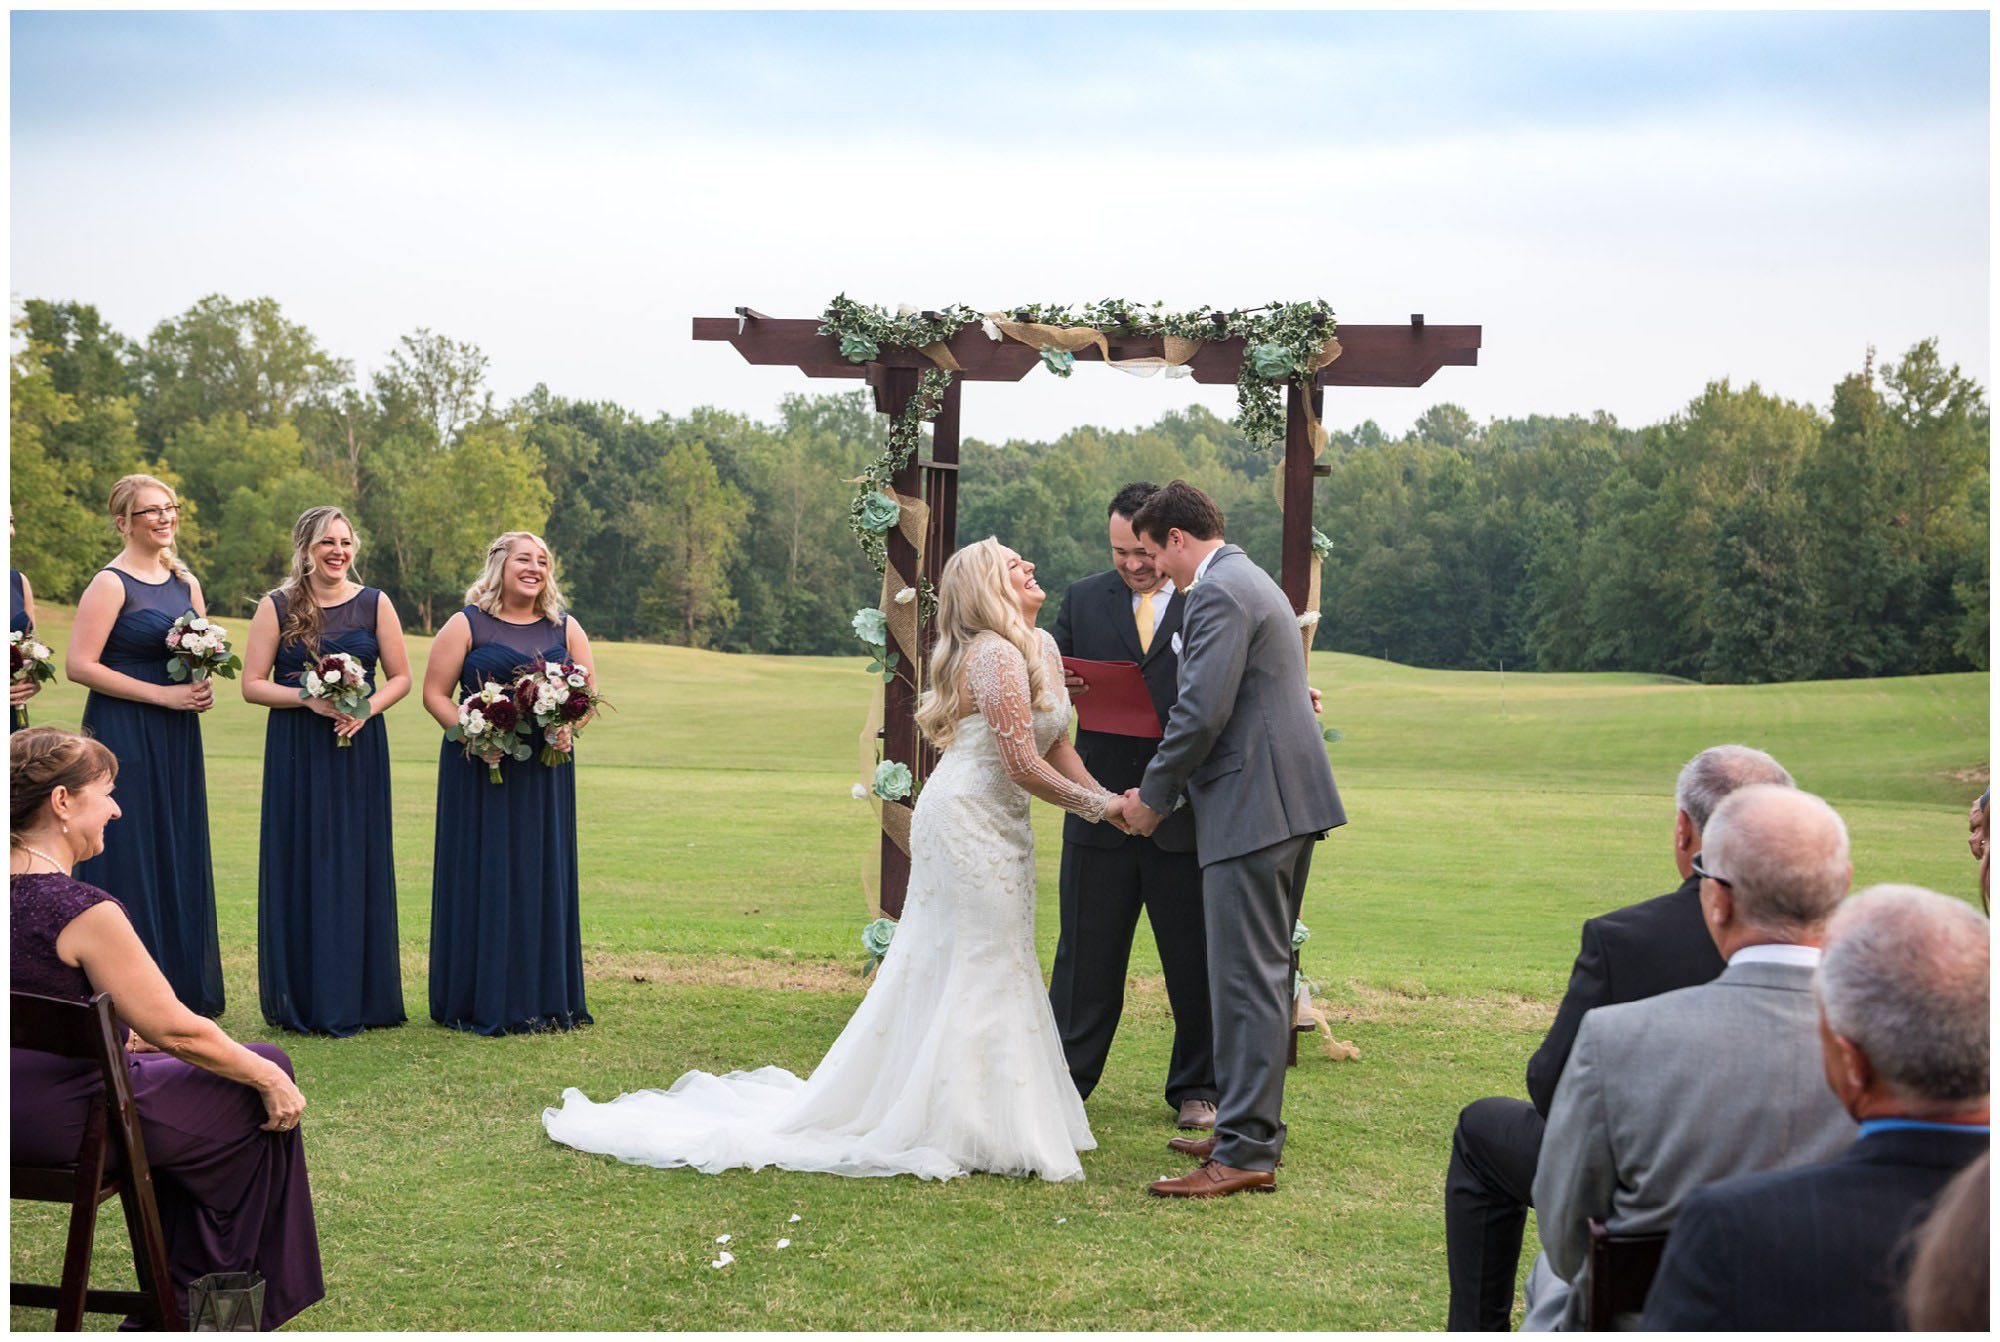 bride and groom laughing during wedding ceremony on golf course